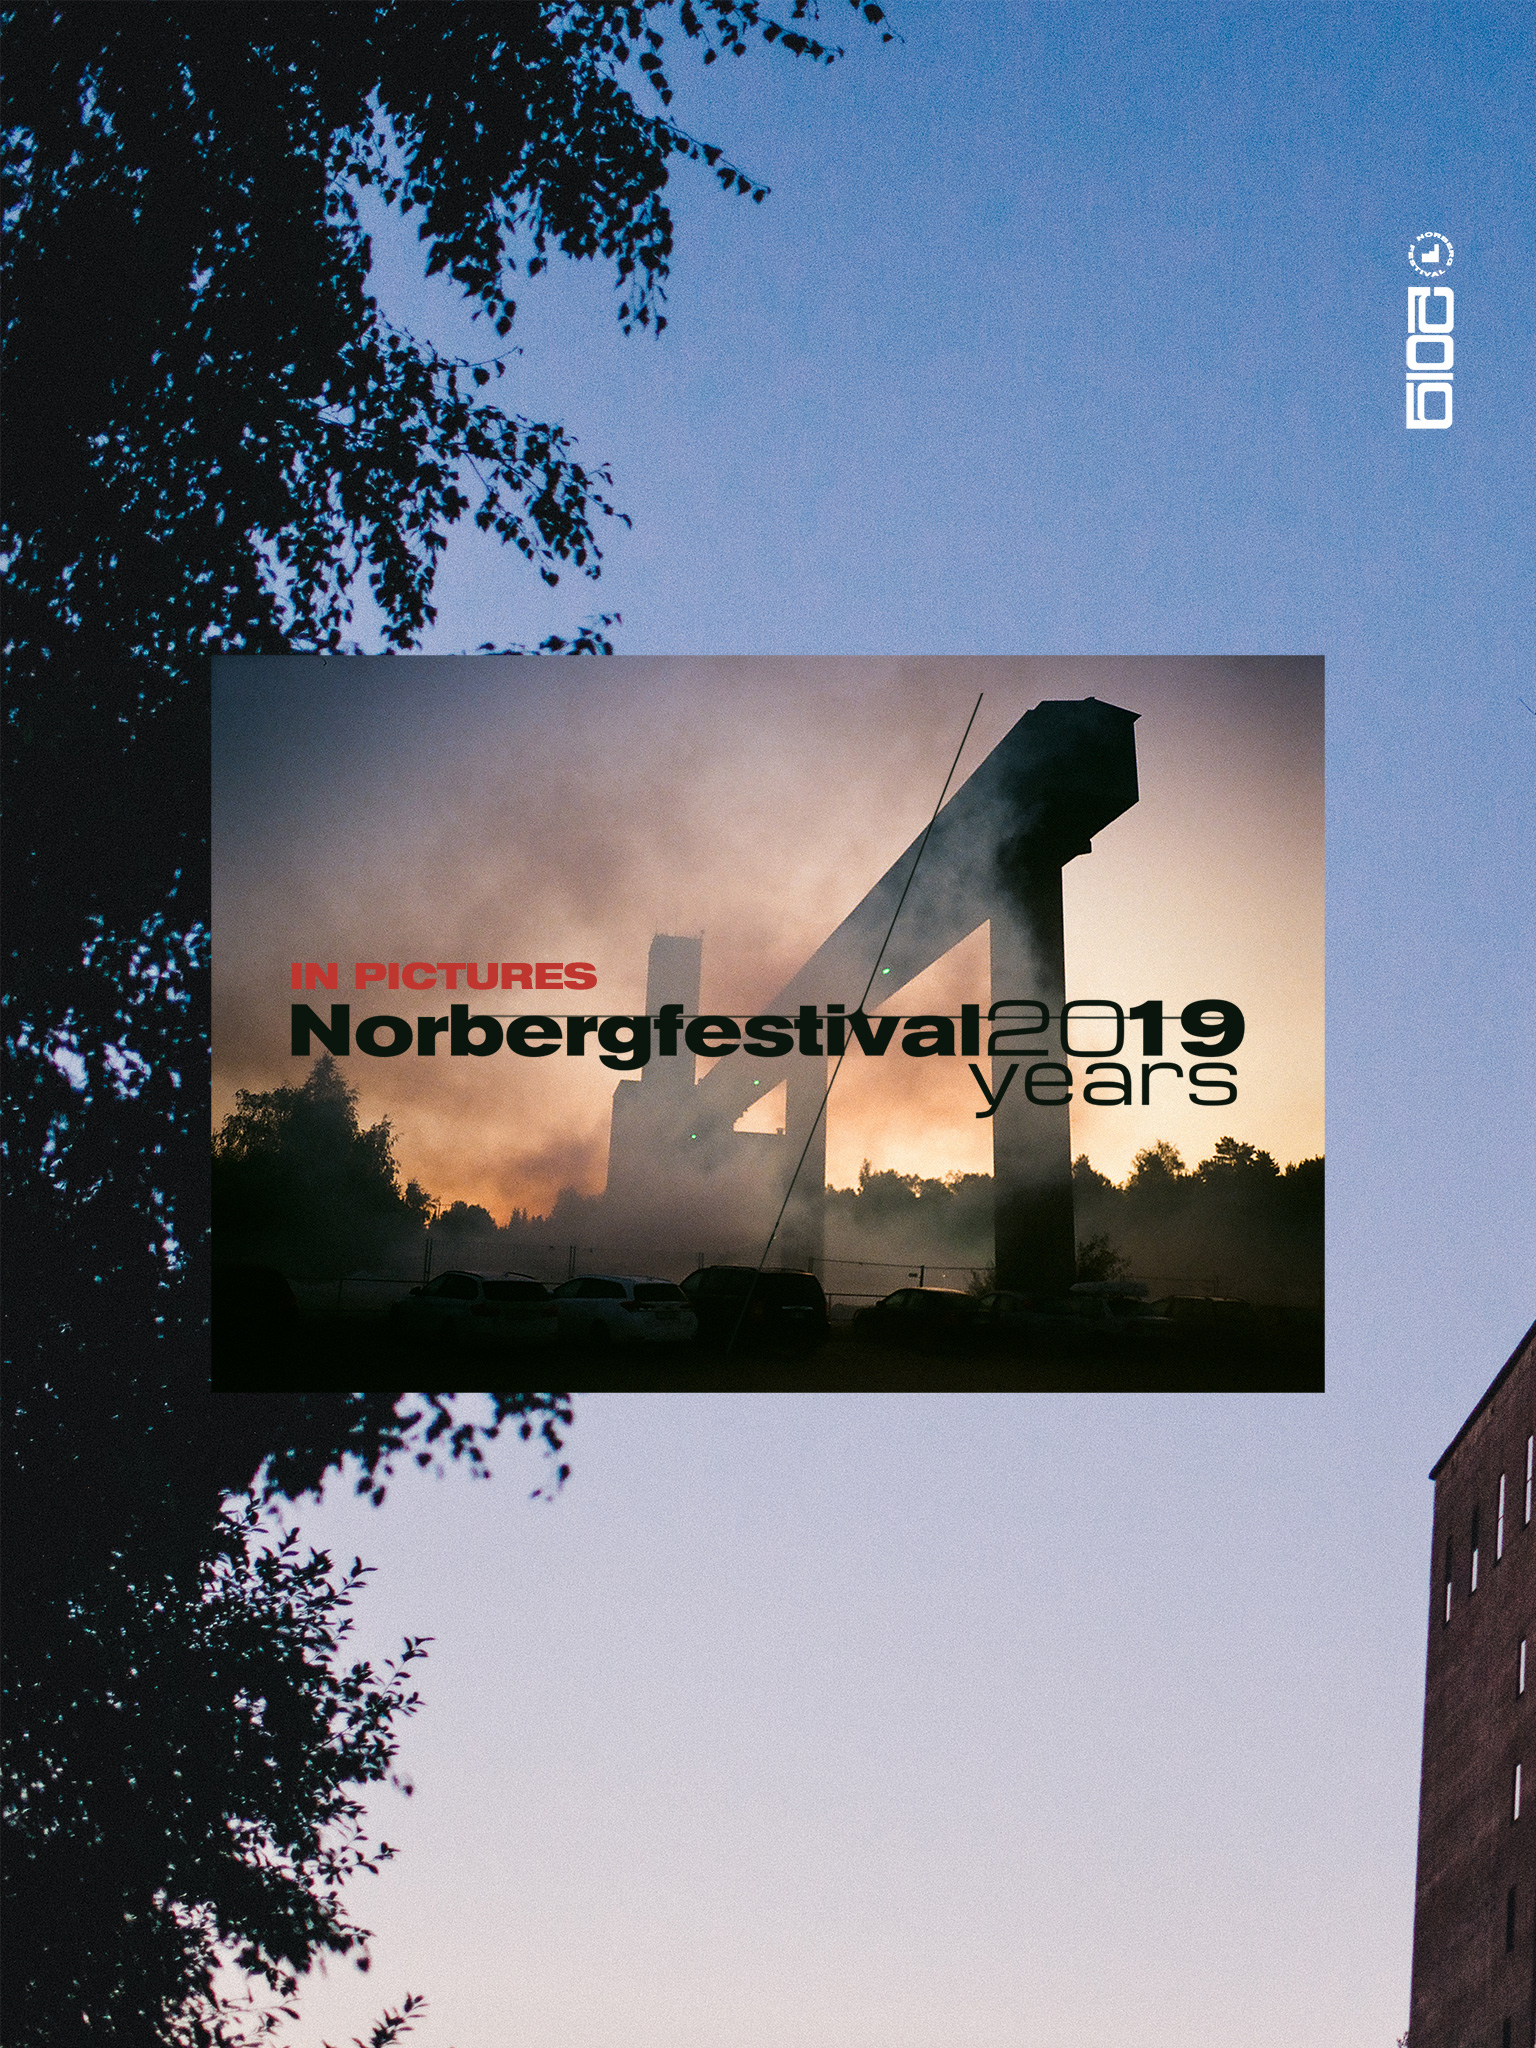 Norbergfestival 2019 in pictures